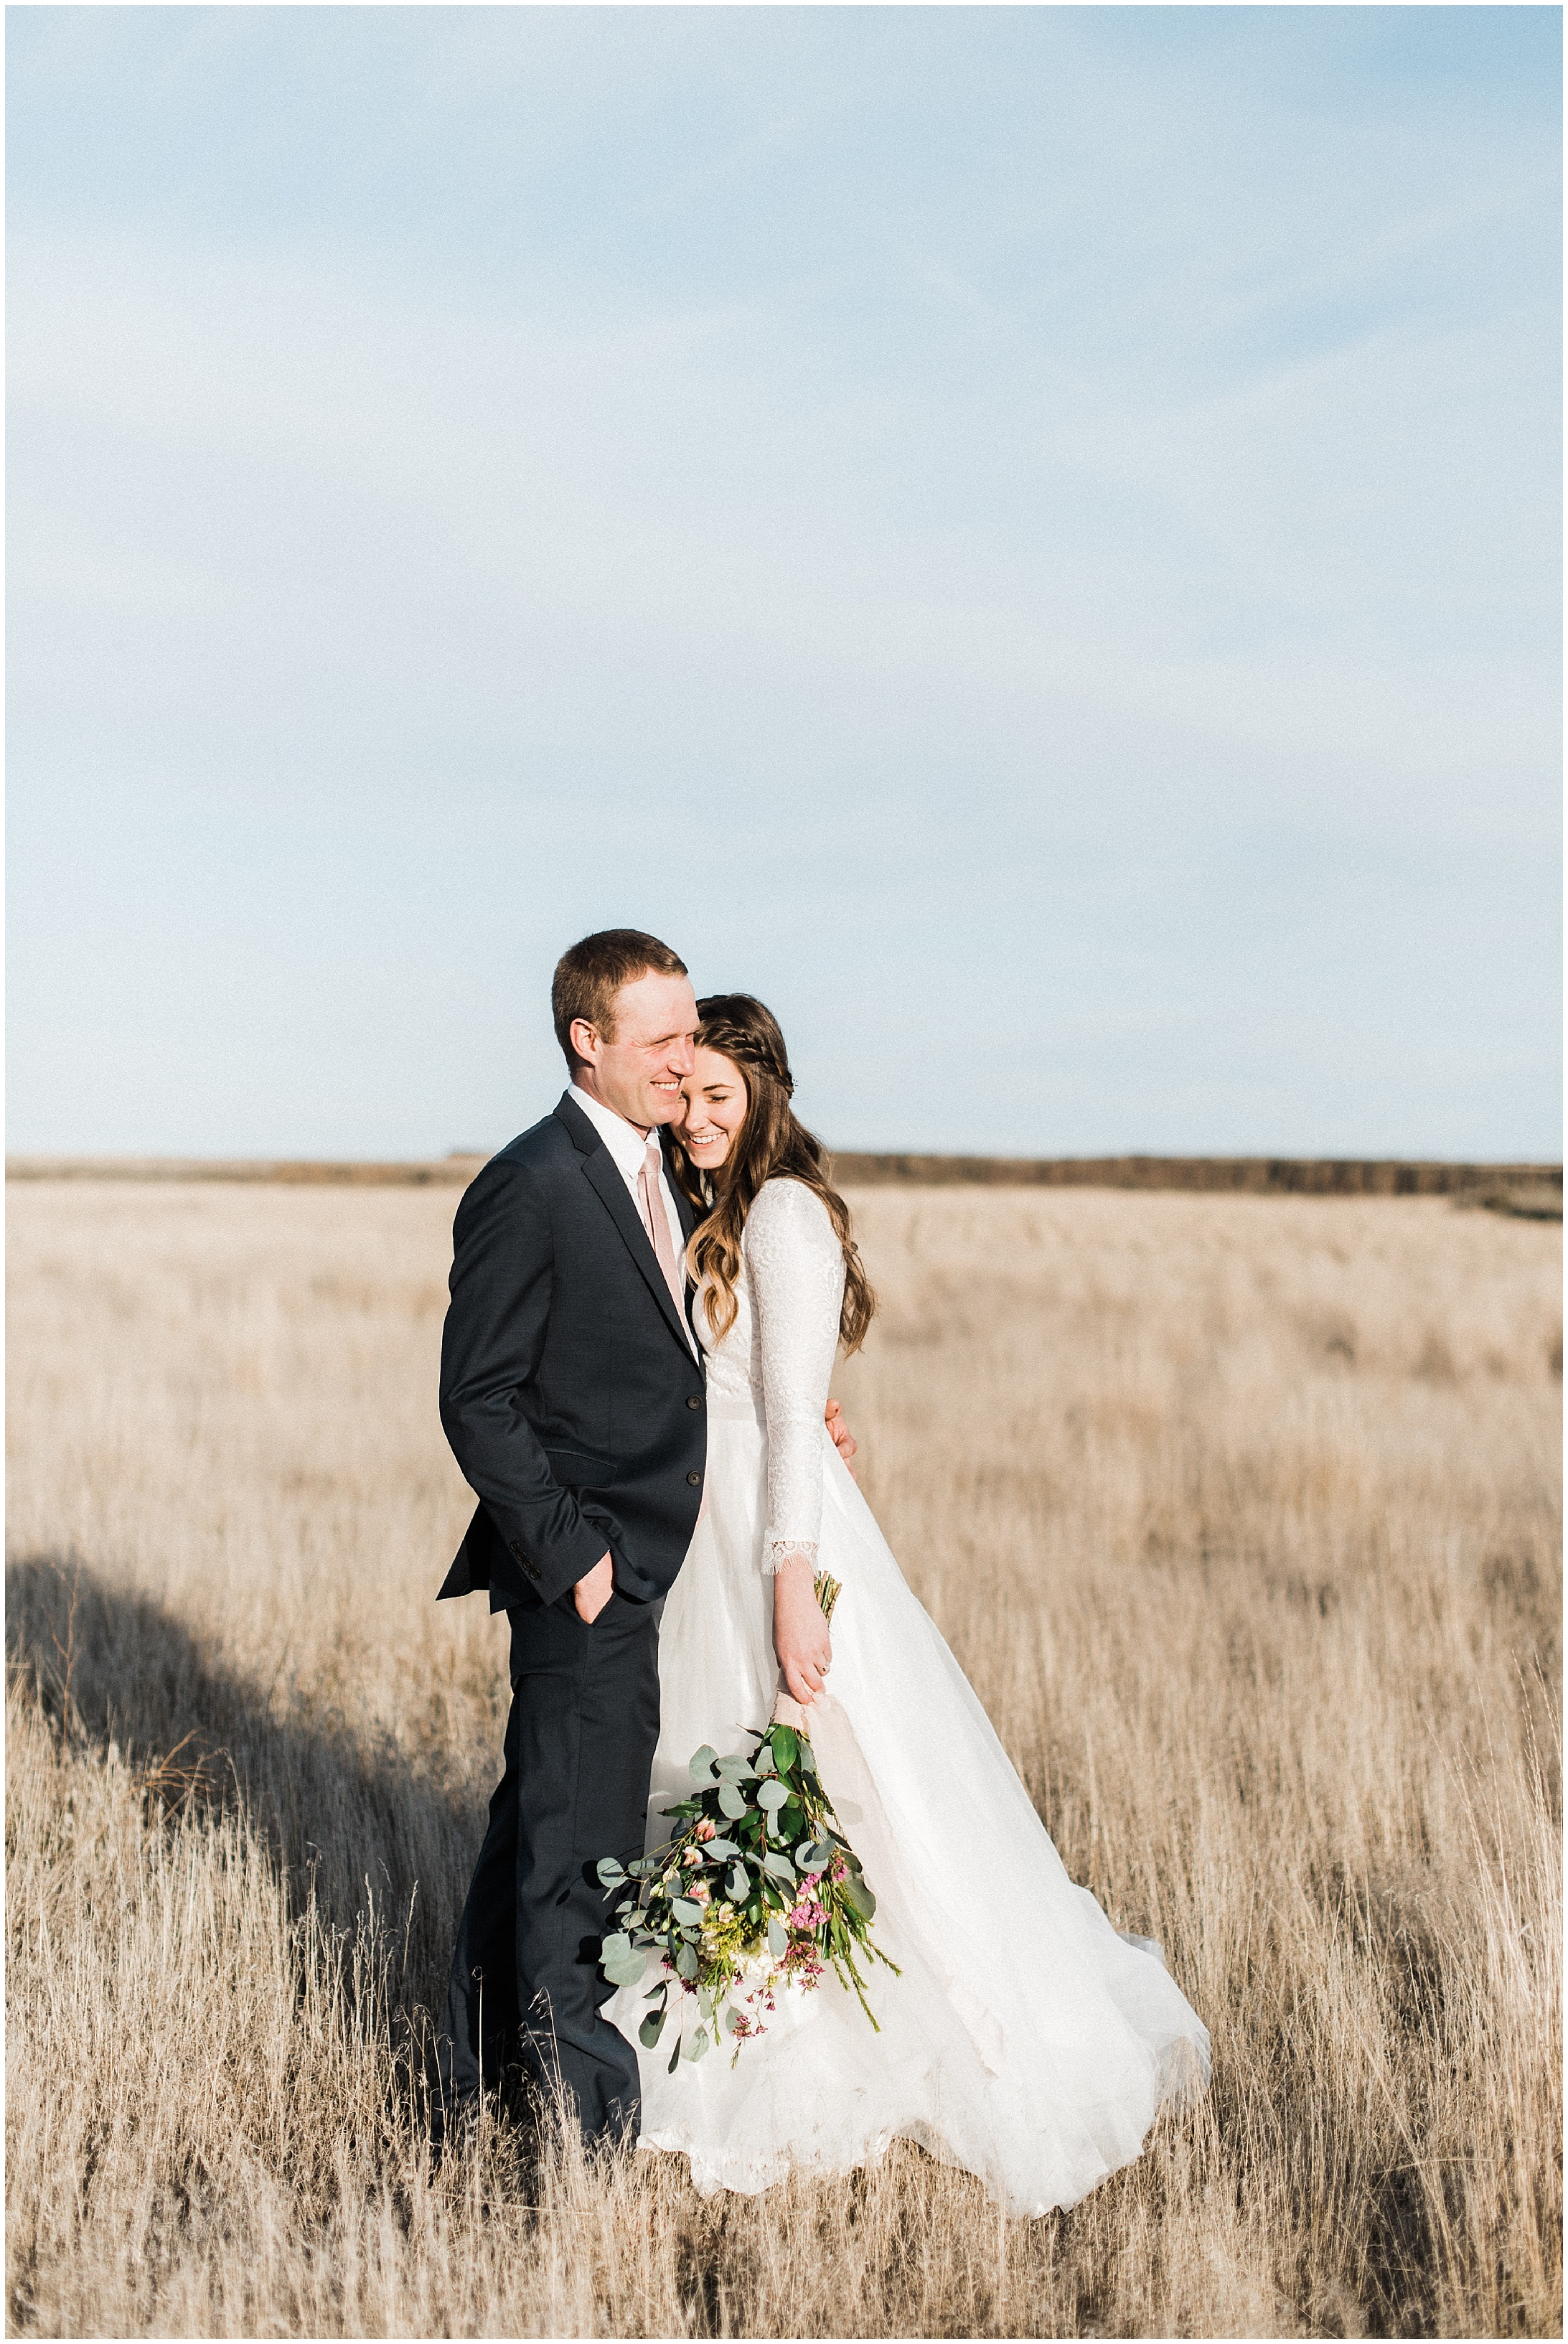 Photo of a bride & groom standing a field by Forthright Photo